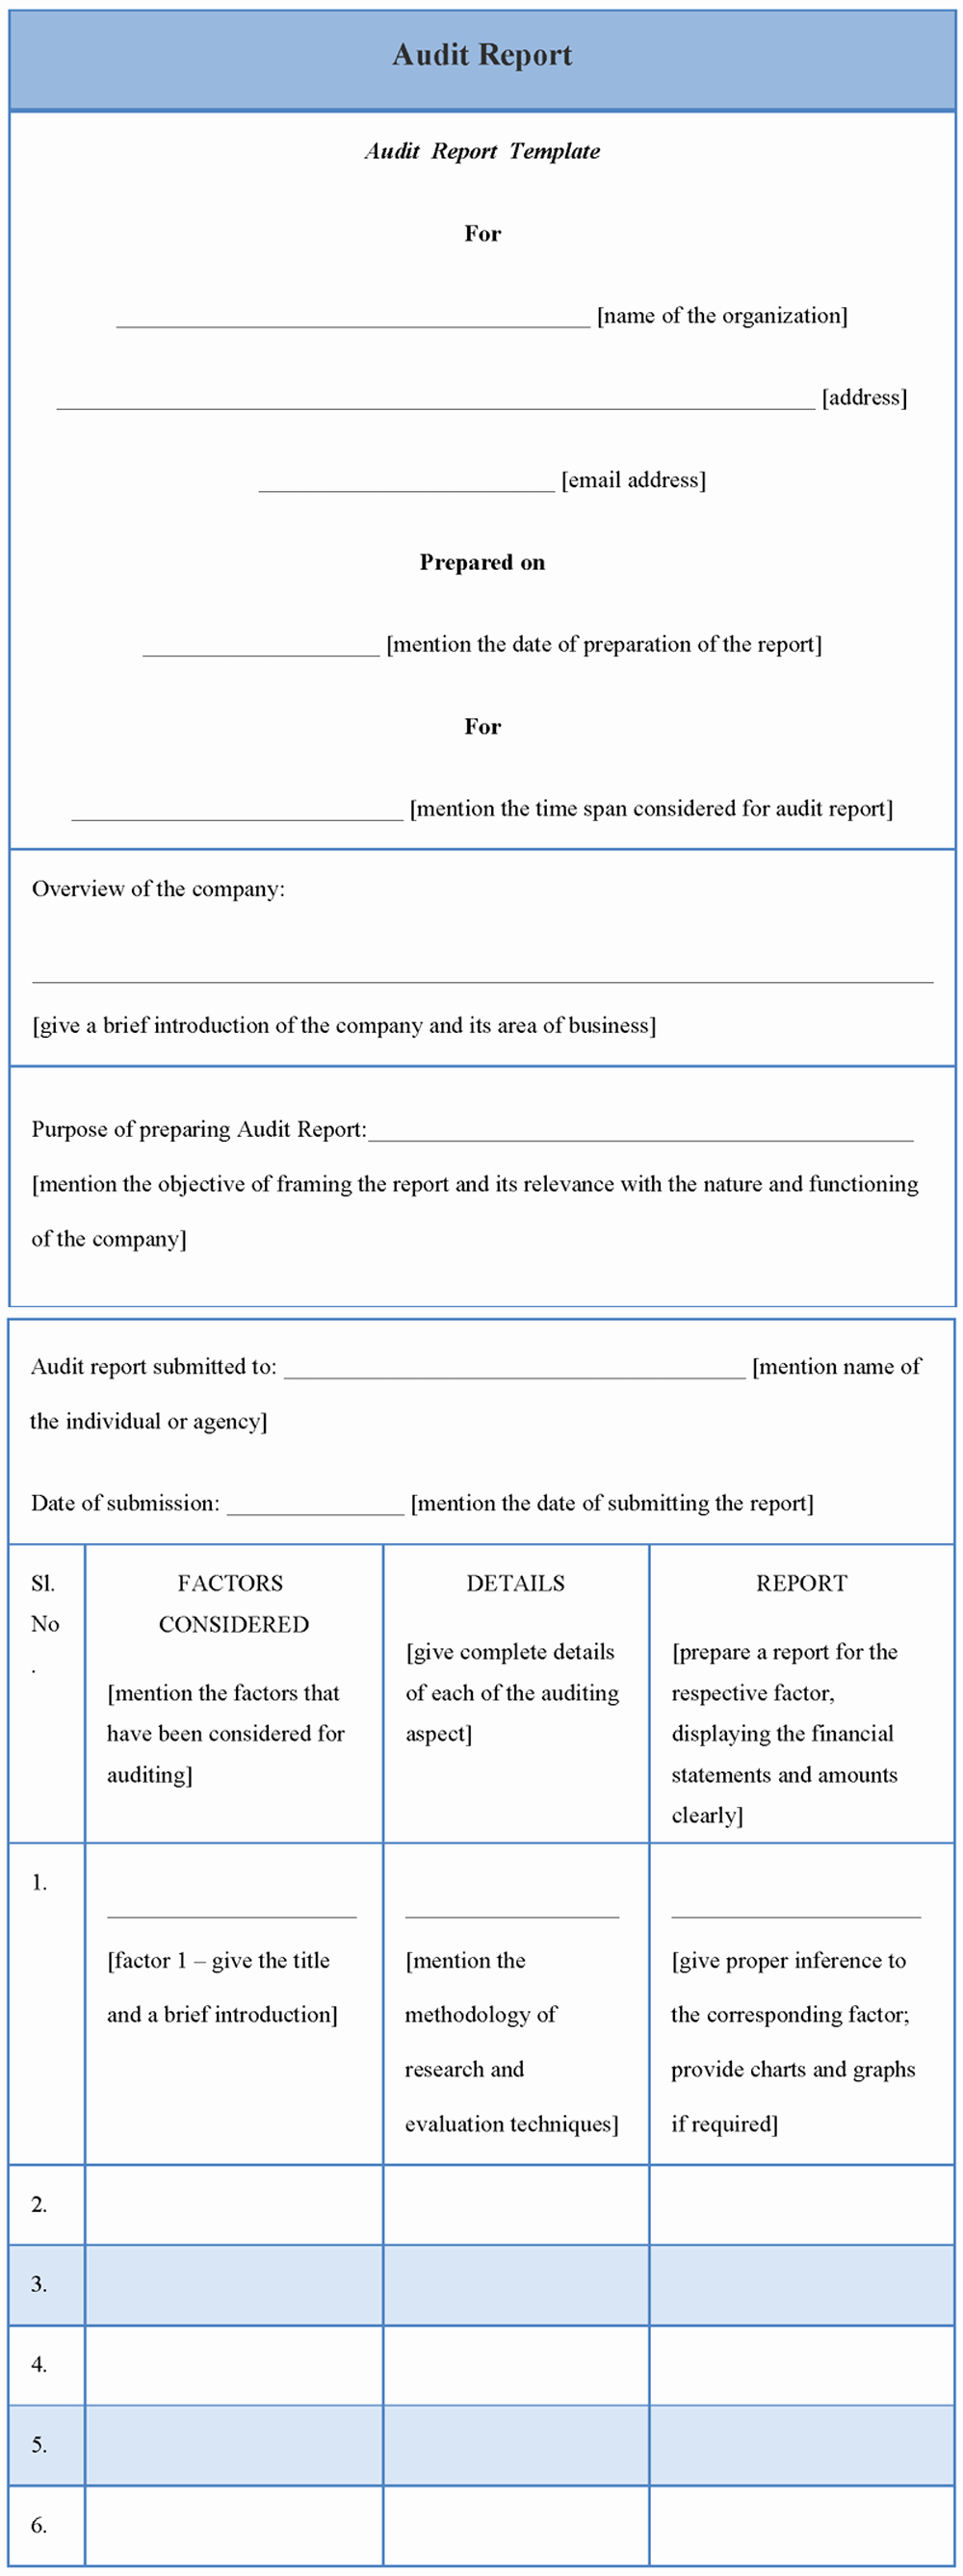 Internal Audit forms Template Inspirational 38 Brilliant Template Samples for Audits Thogati